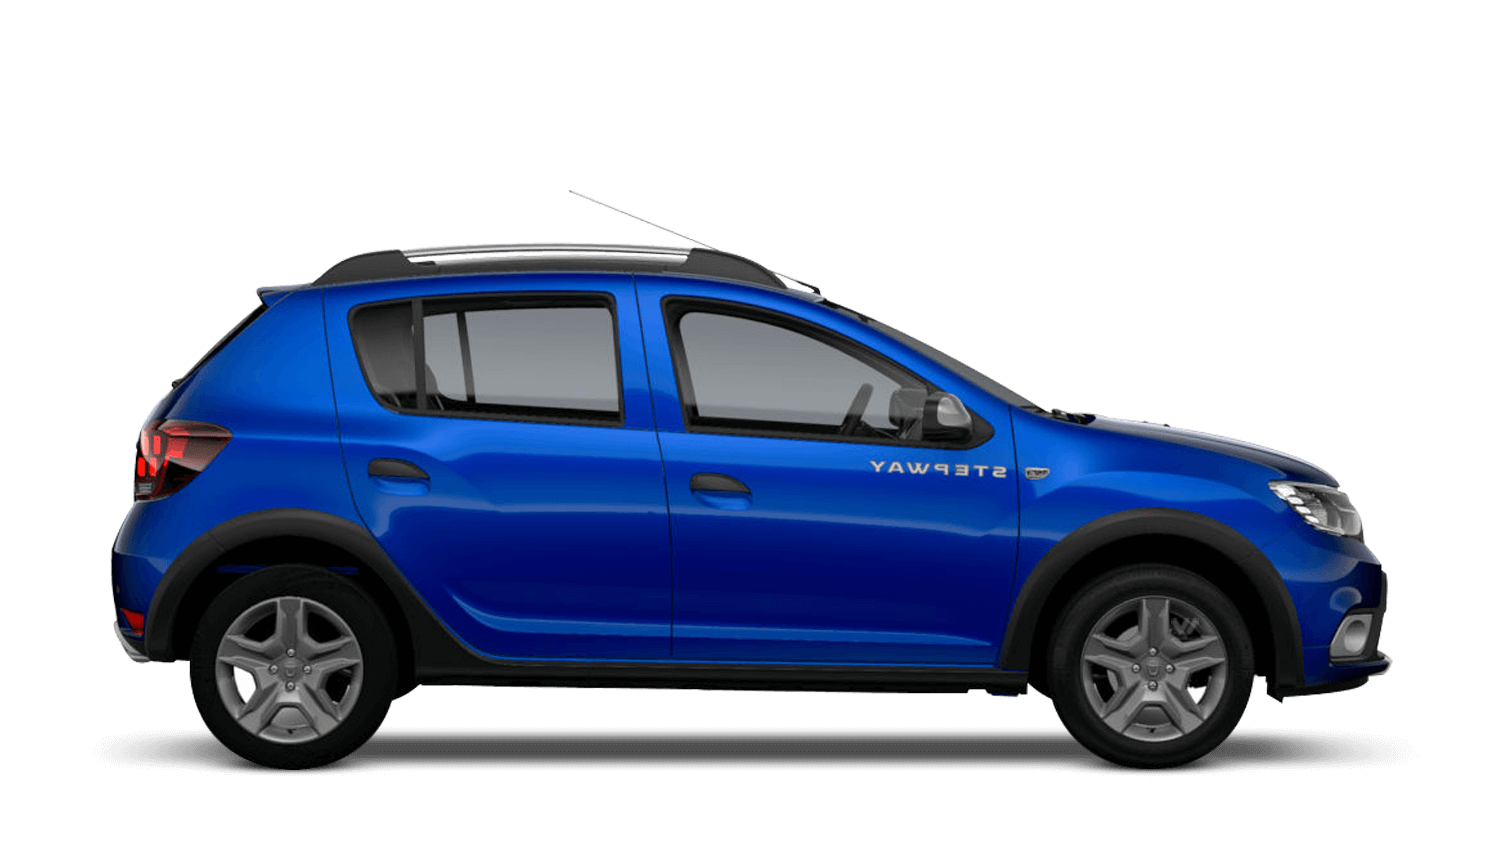 Iron Blue Dacia Sandero Stepway